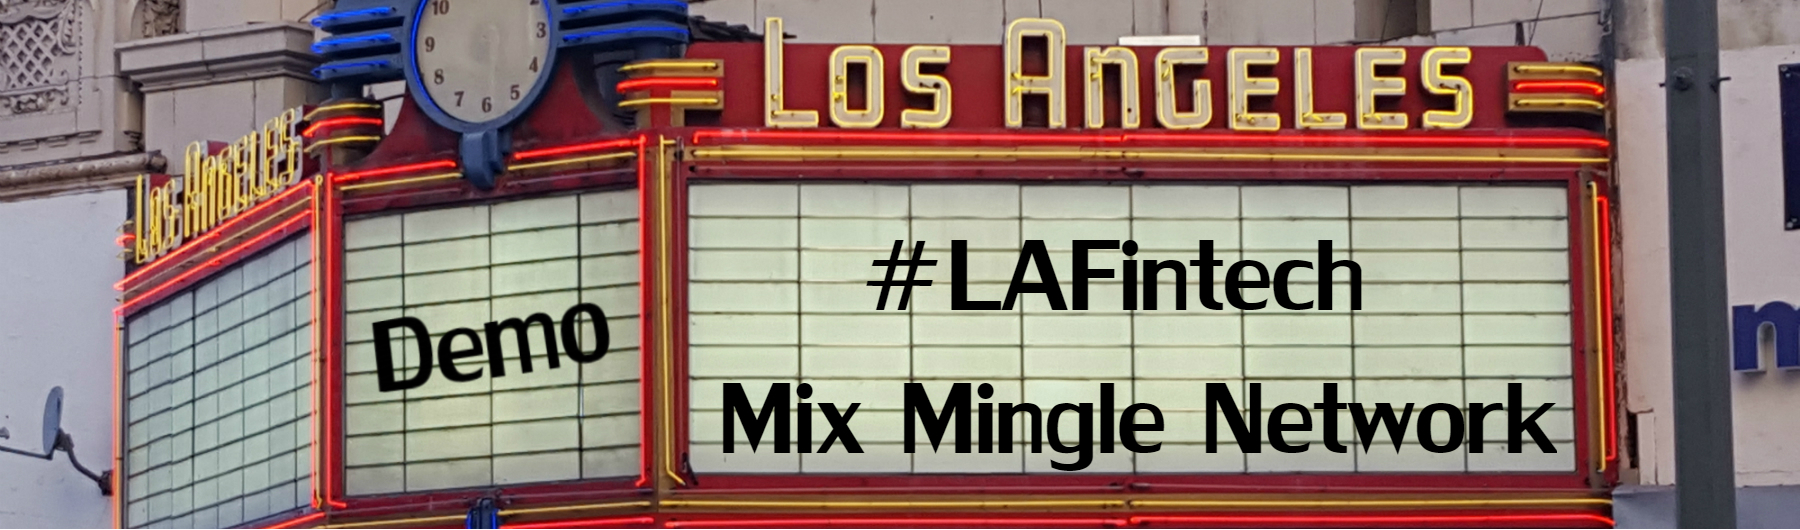 Los Angeles Fintech Demo Mix Mingle Network